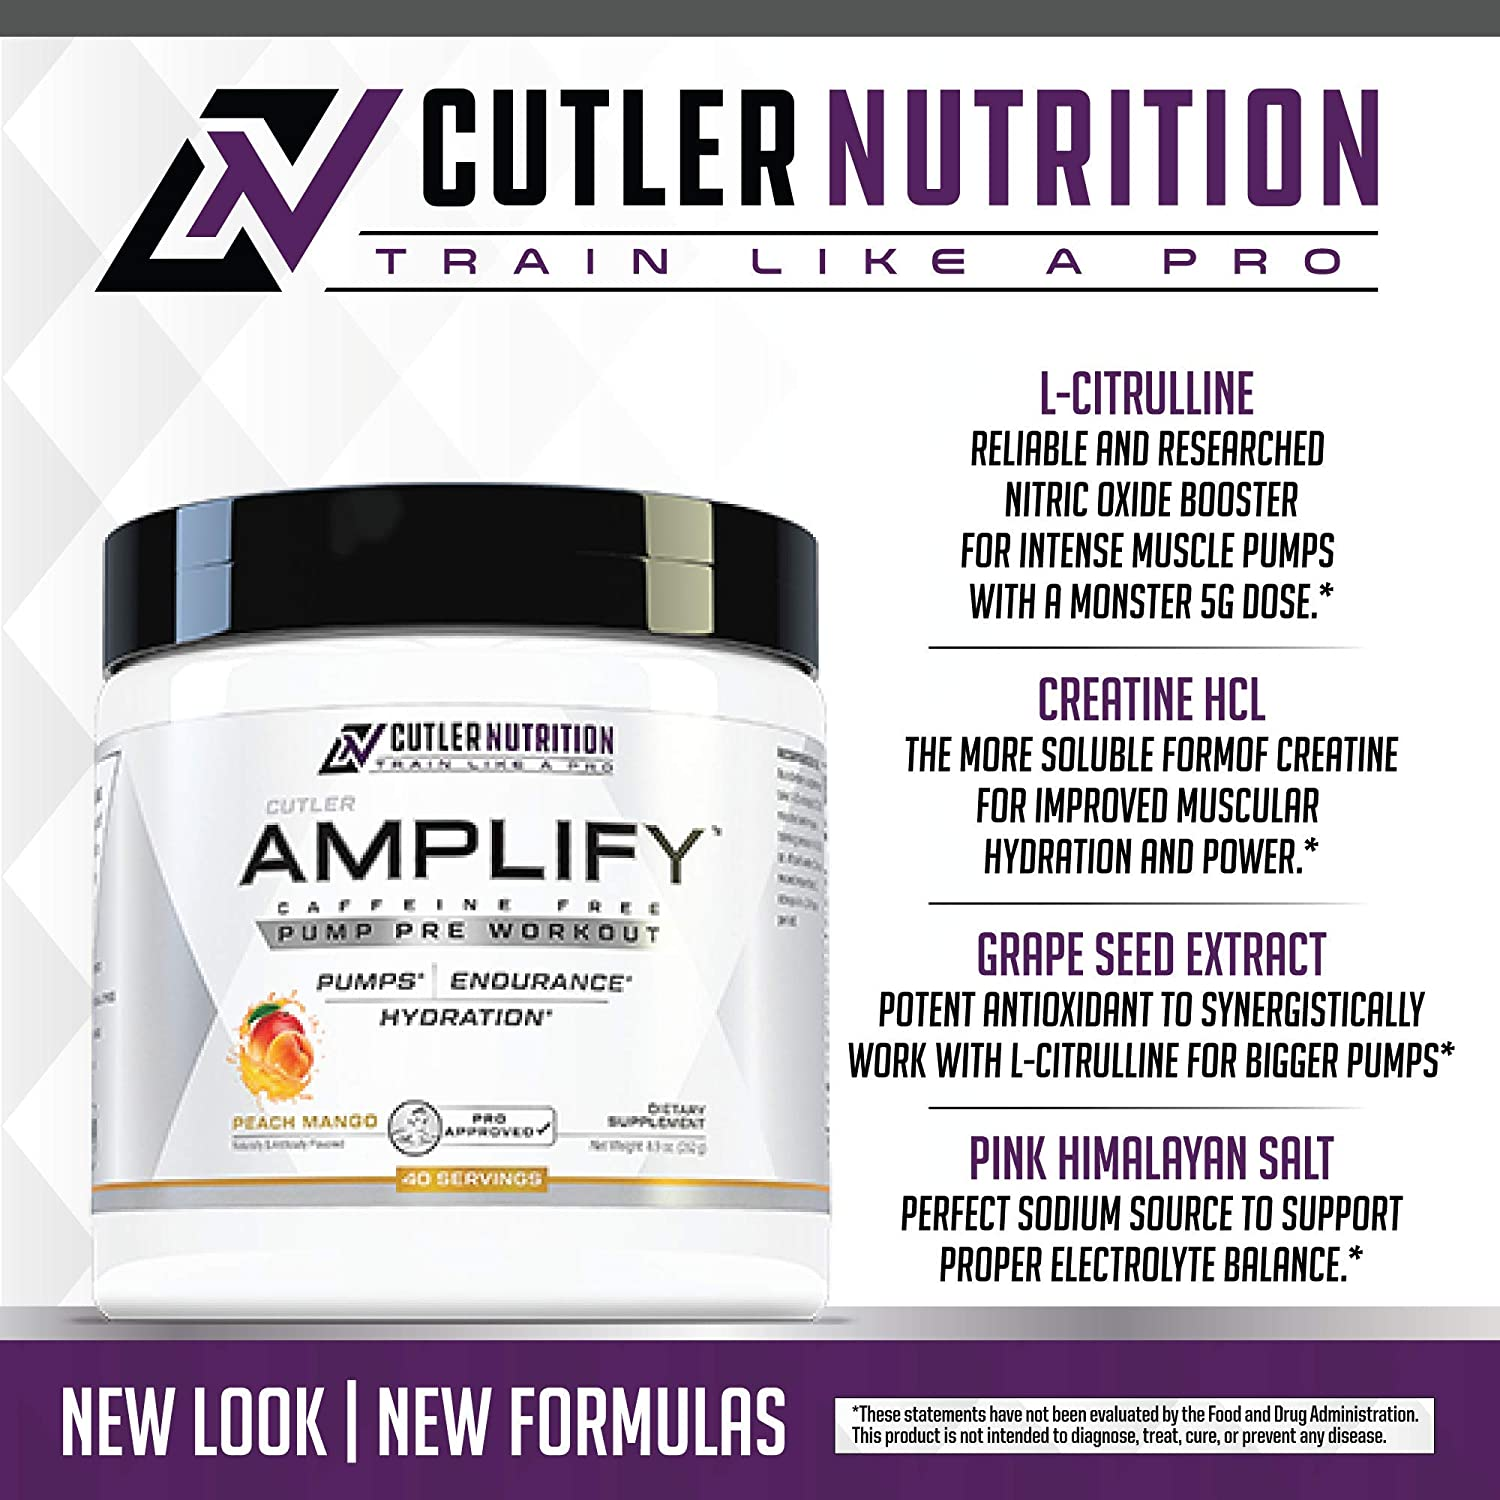 Amplify Caffeine Free Pre Workout for Men and Women Stim Free Muscle Pump Enhancer, Hydration Powder with Electrolytes, L Citrulline, Creatine HCl for High Volume Training Peach Mango, 40 Servings